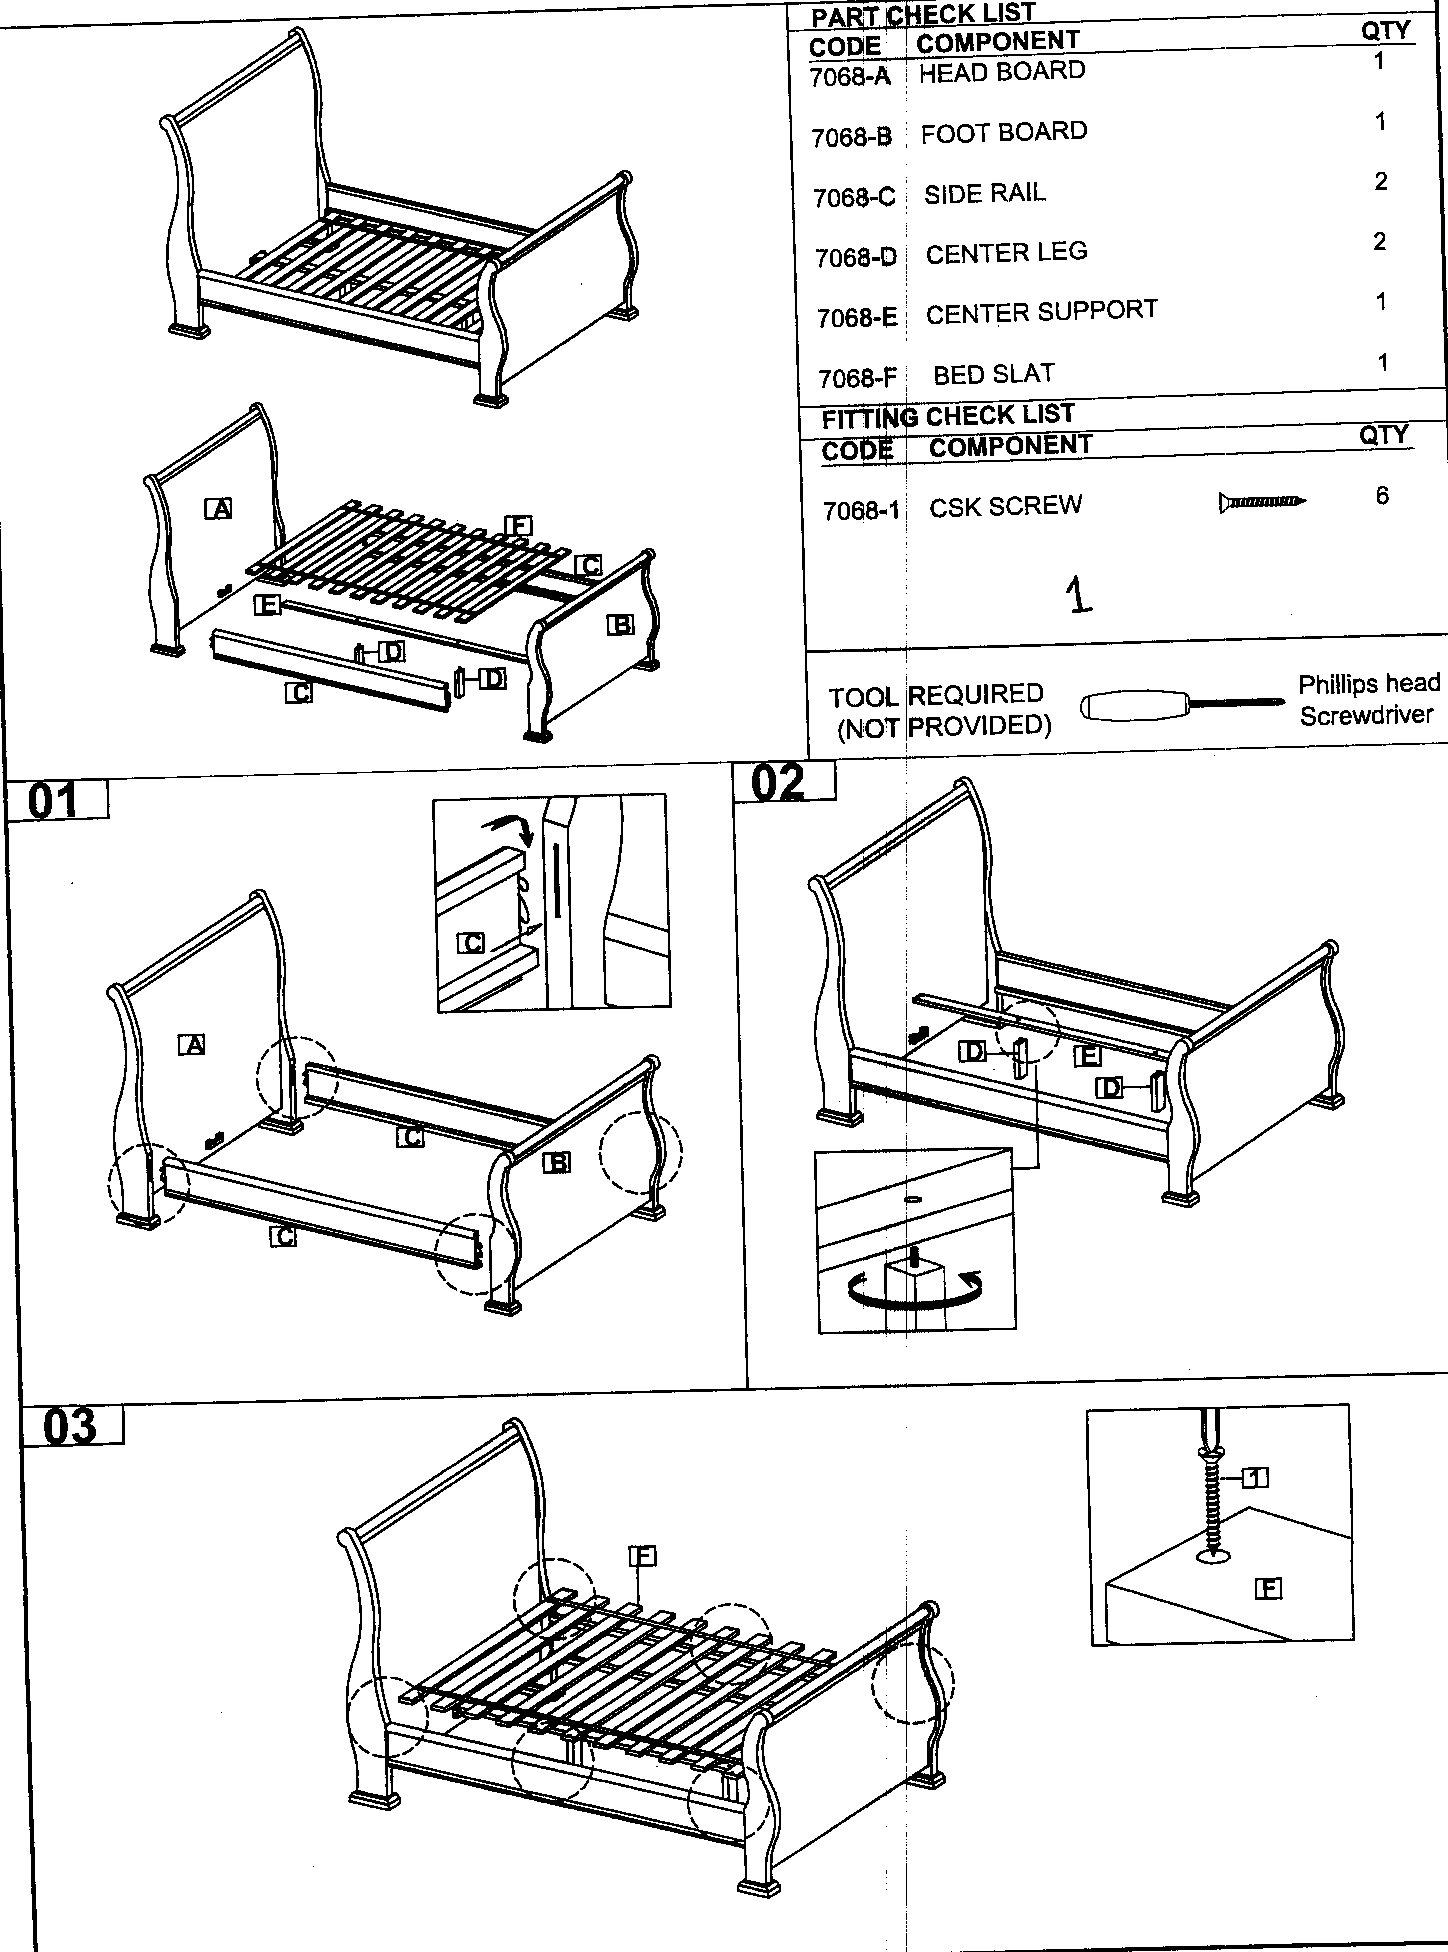 Land's End 10486 bed diagram